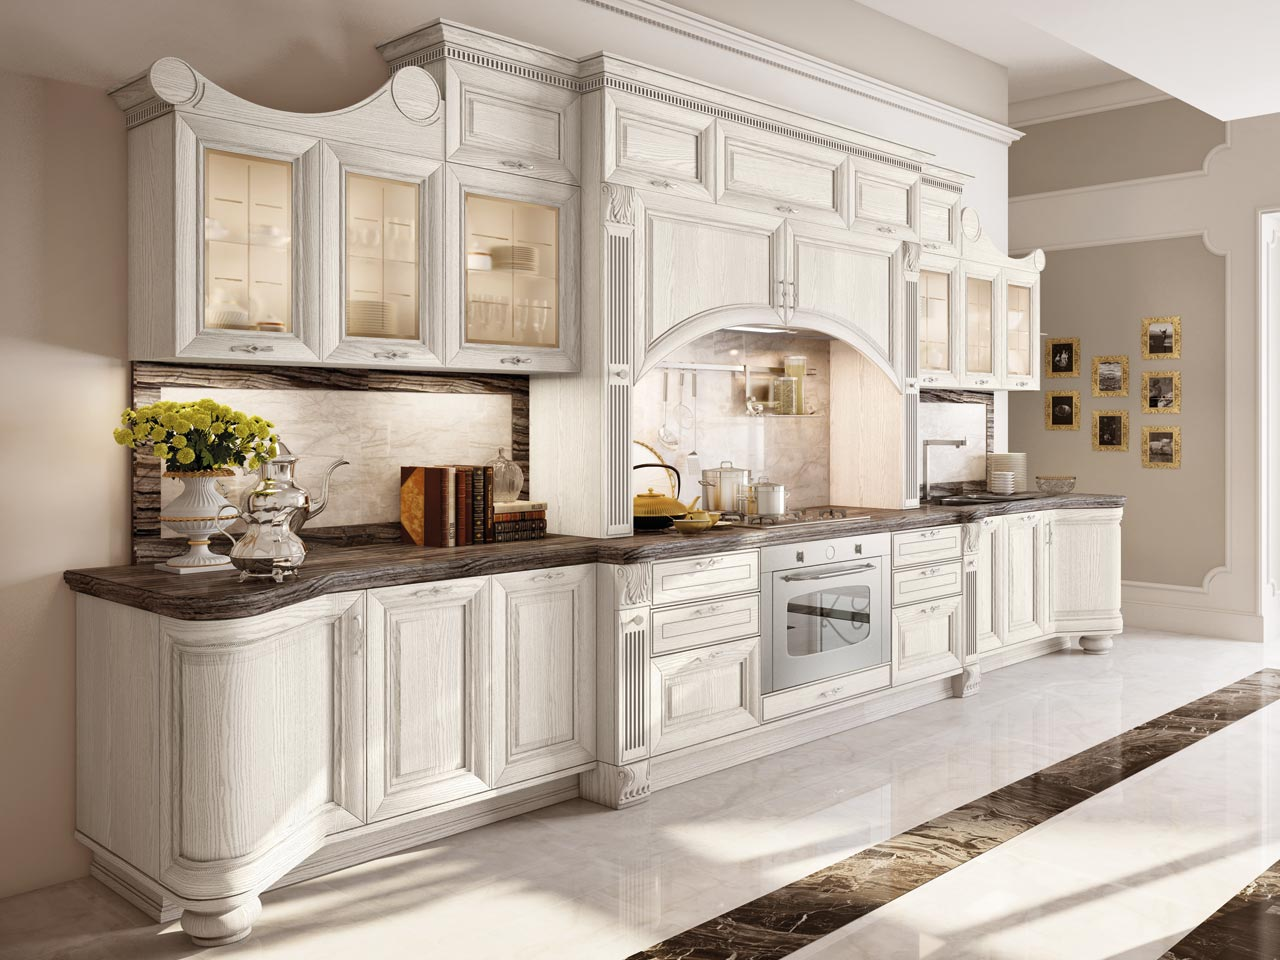 Pantheon lacquered kitchen by cucine lube - Immagini cucine moderne ...